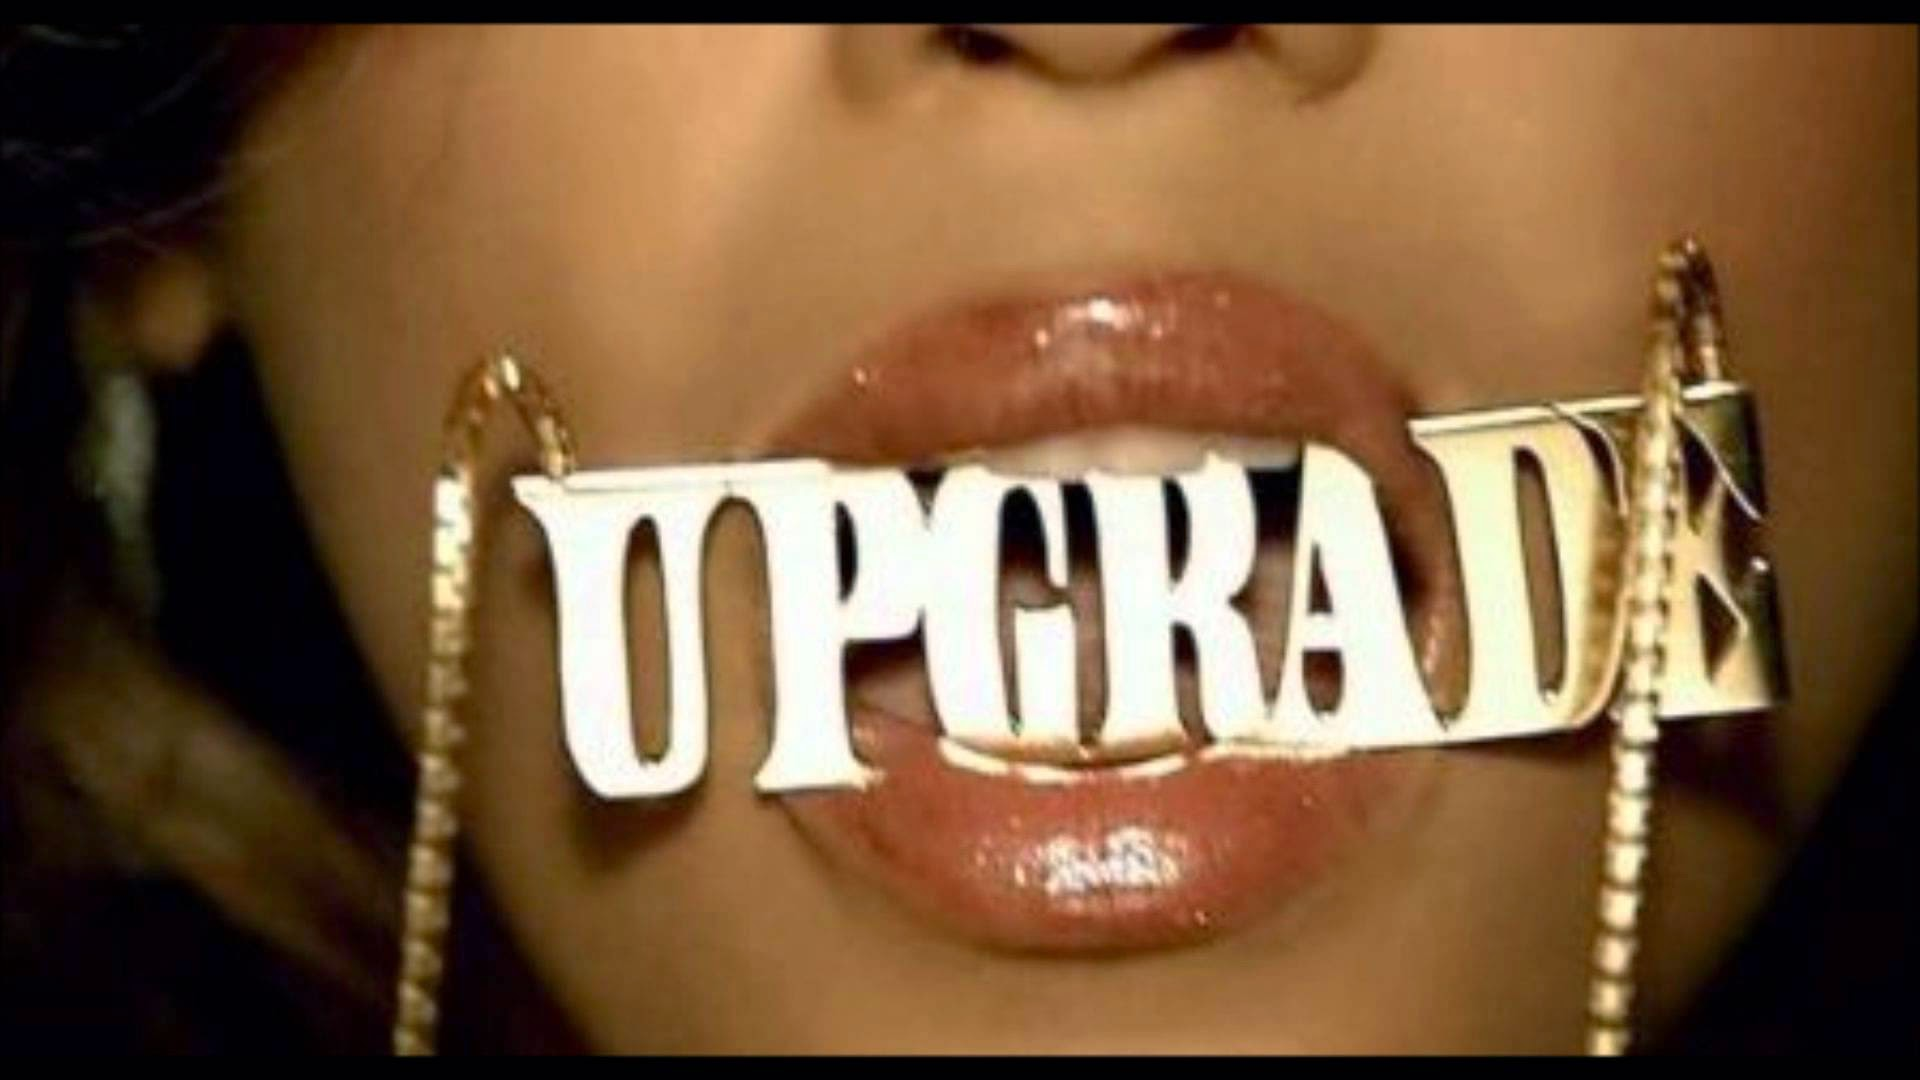 WHOLE MURPHY - WHOLE UPGRADE: UPGRADE REFERS TO AN IMPROVEMENT, ENHANCEMENT, TO RAISE IMPORTANCE, VALUE, ESTEEM, STATUS OF A PERSON BY GIVING PROMOTION.